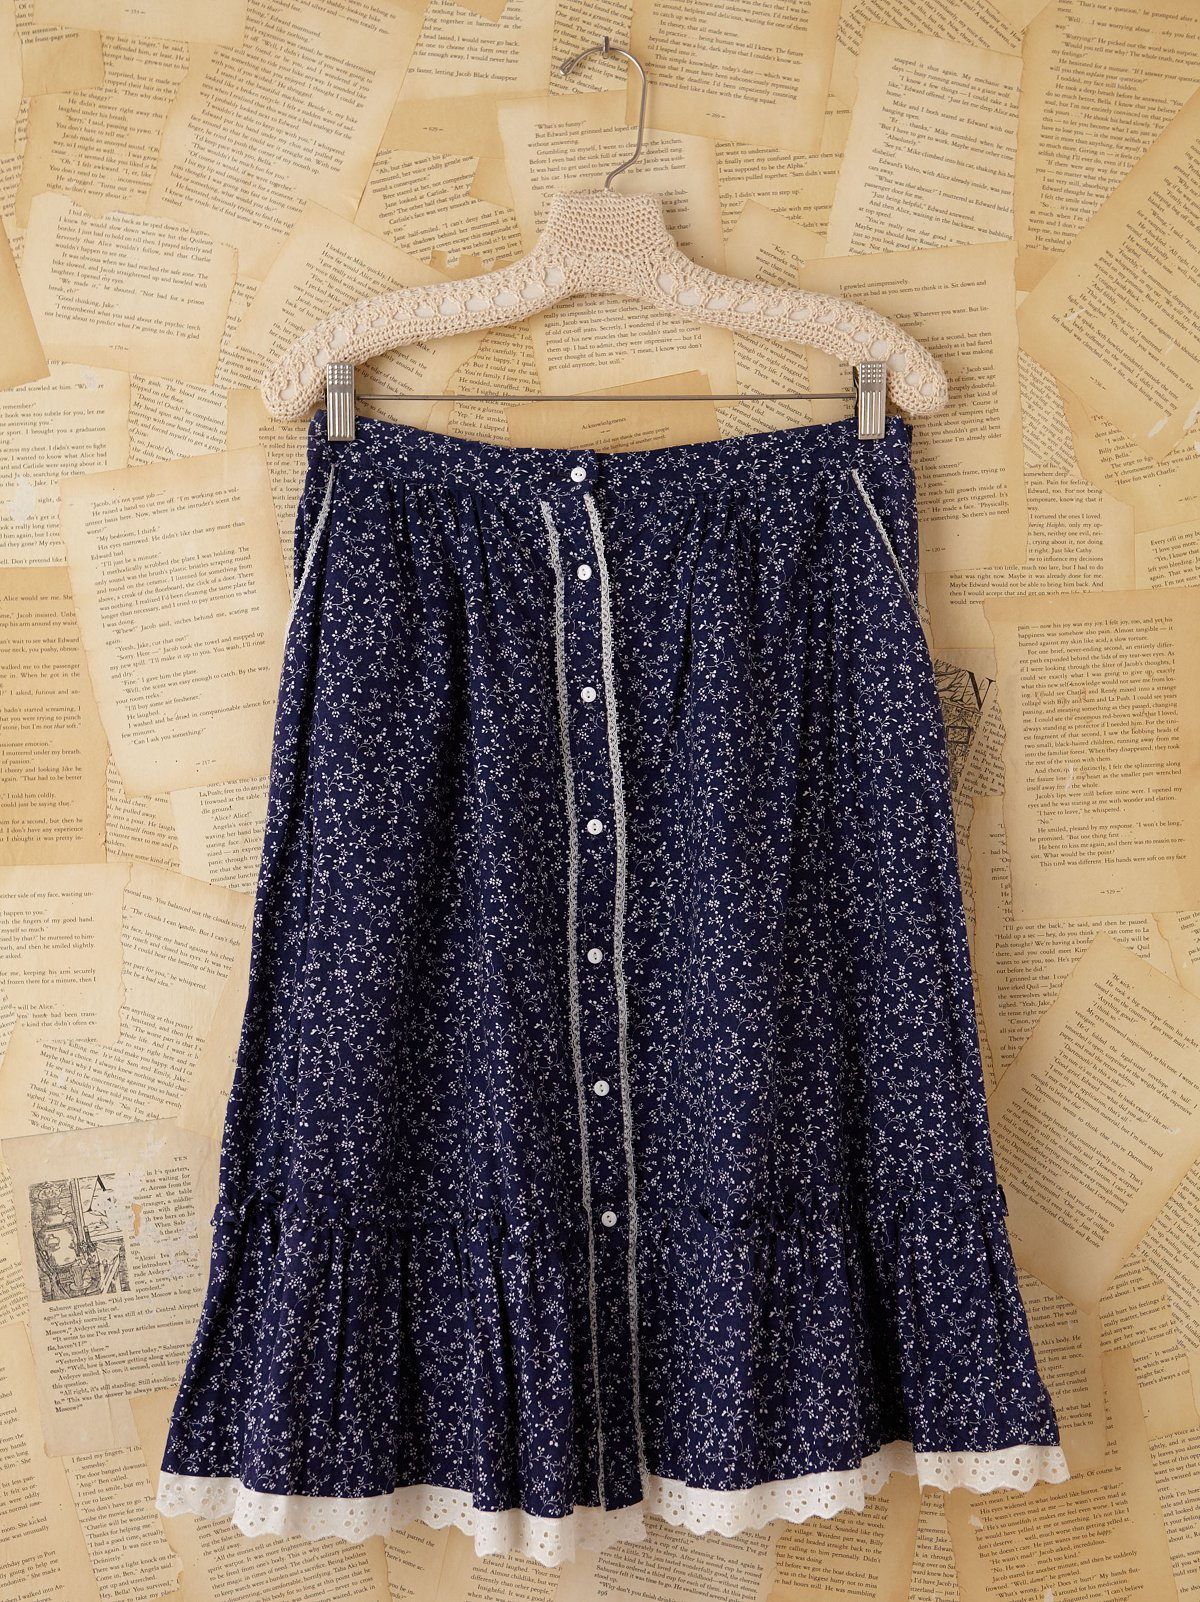 Vintage Blue Floral Printed Skirt